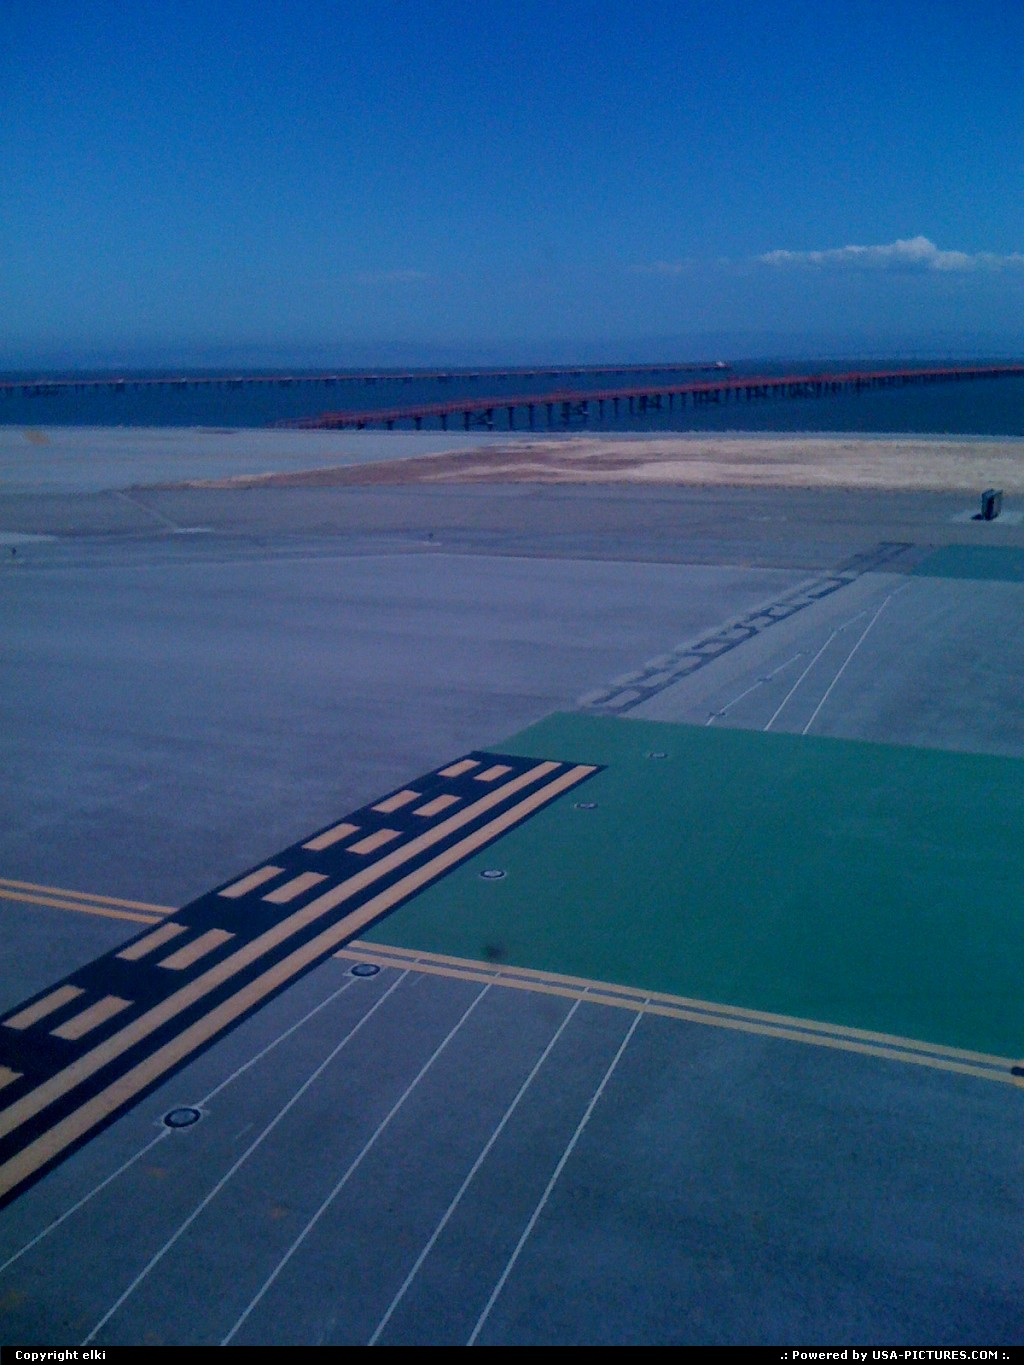 Picture by elki:San FranciscoCaliforniasan francisco aiport